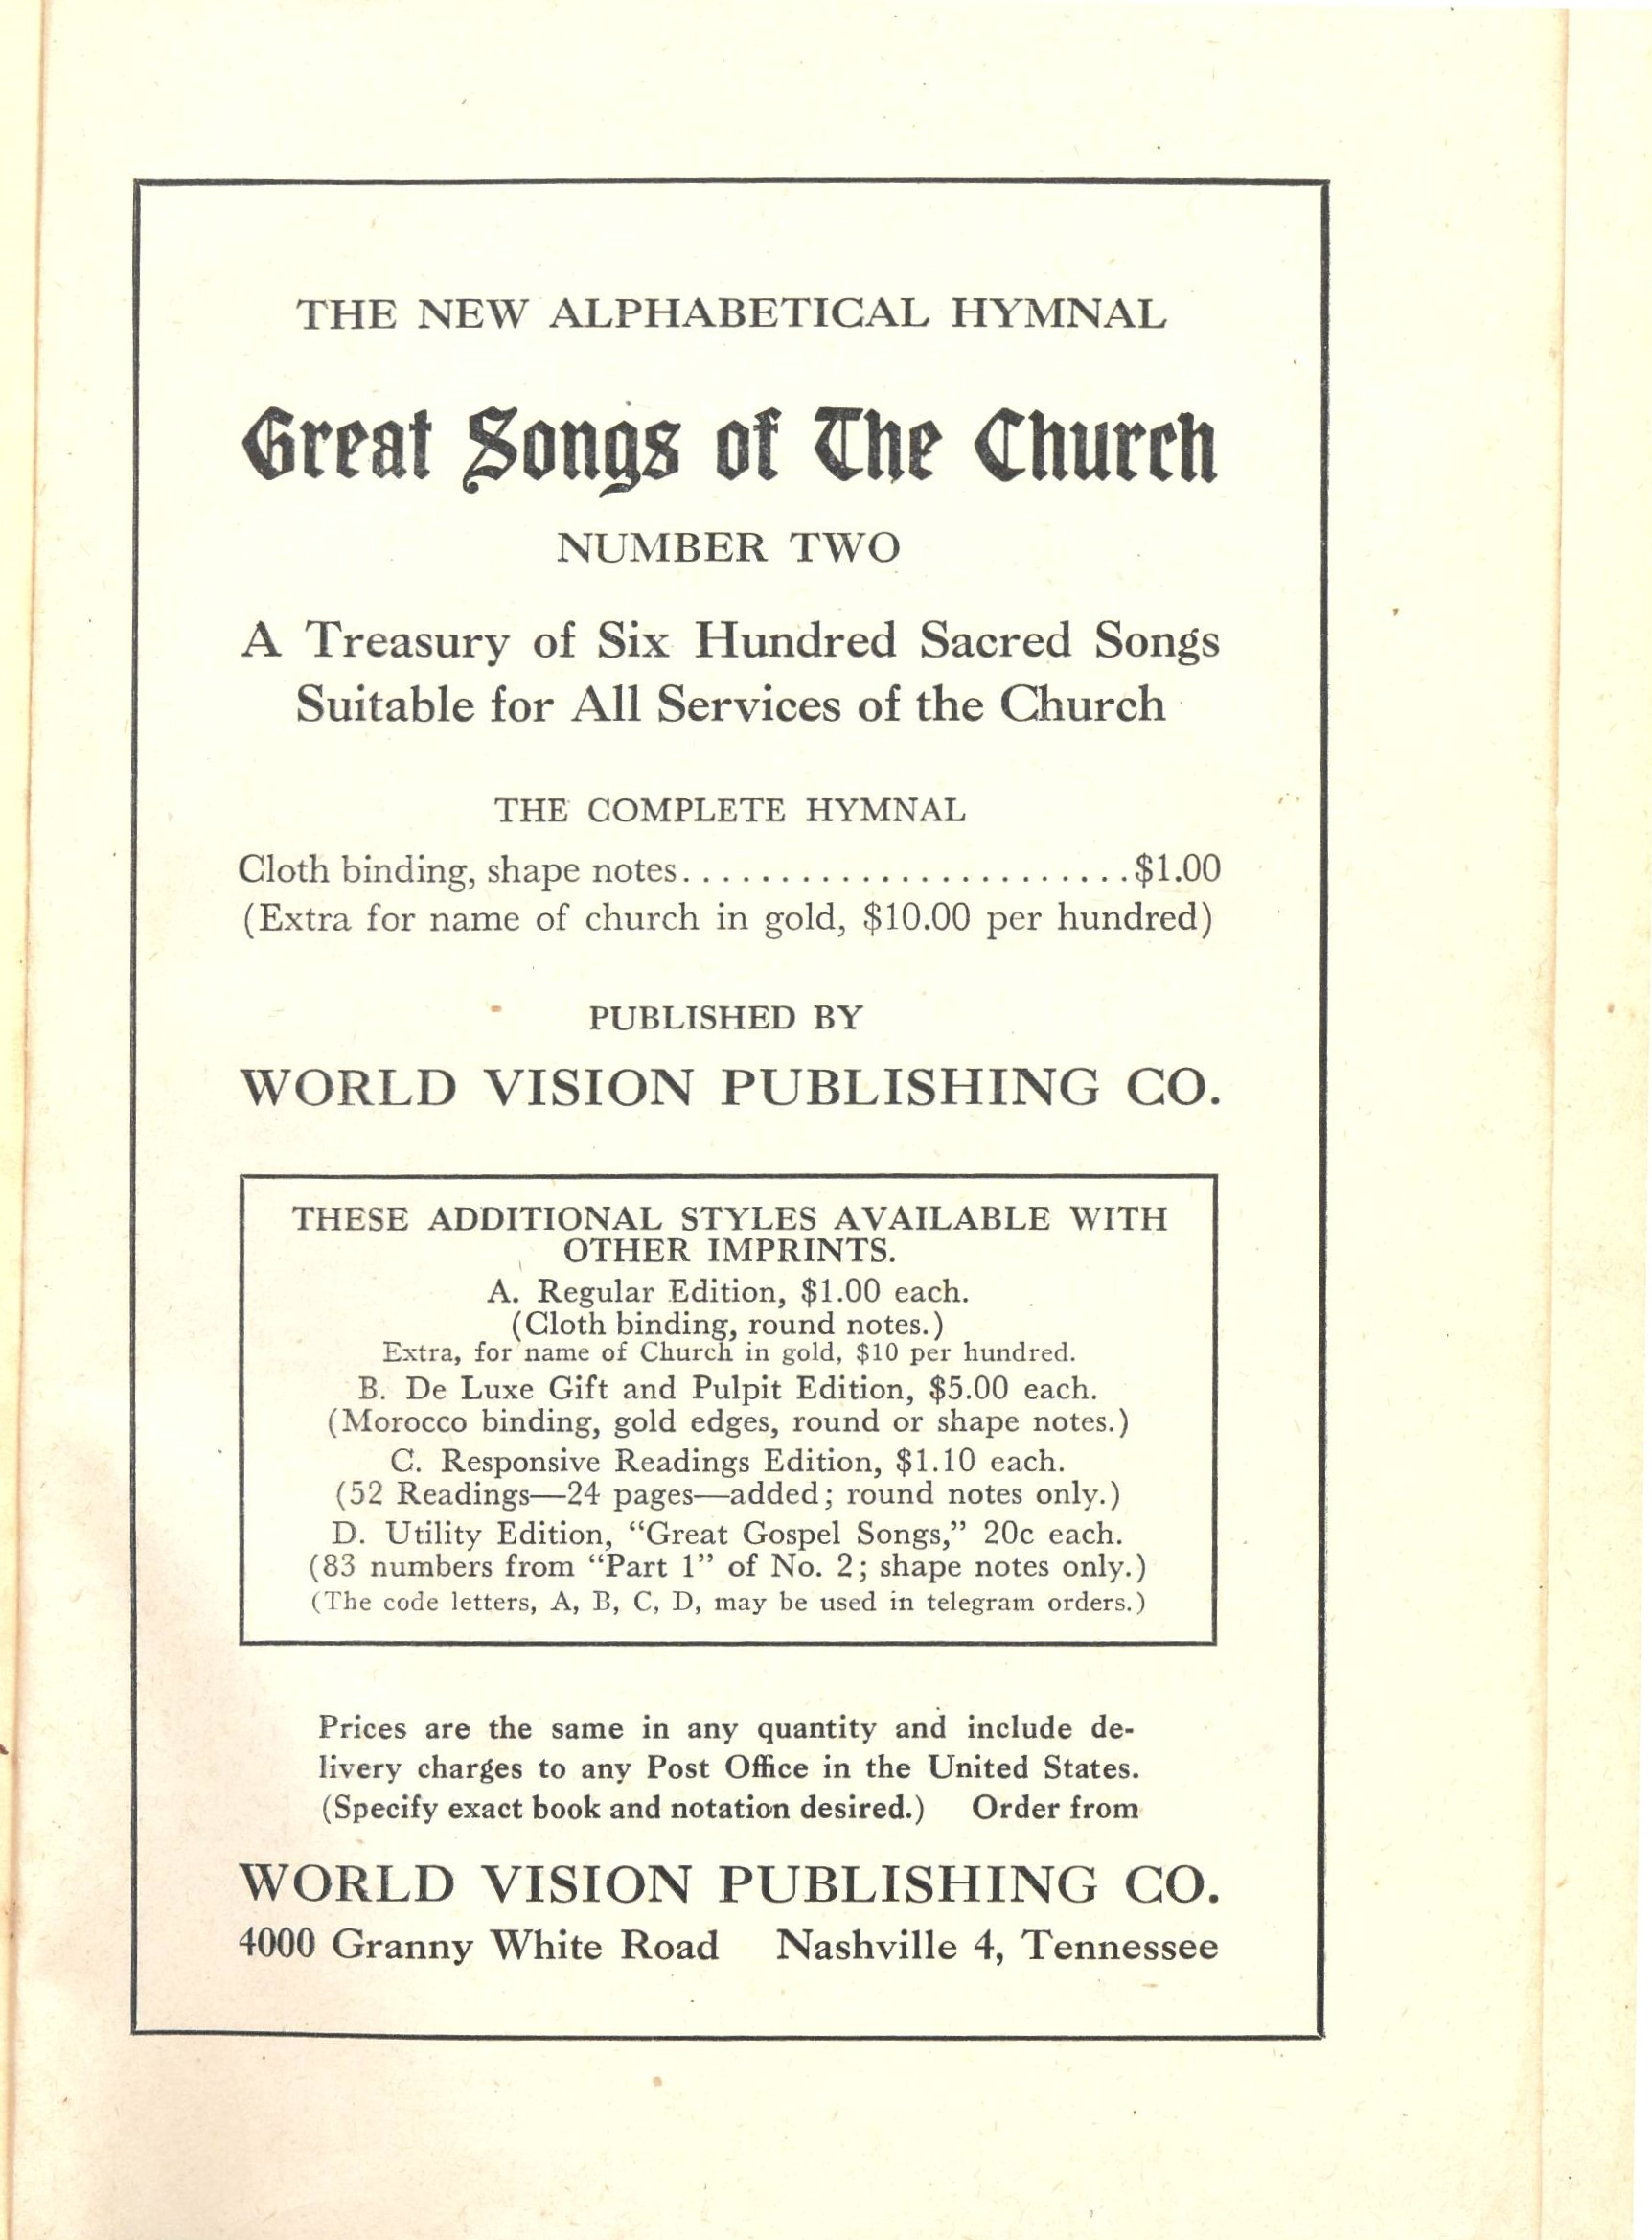 Great Songs of the Church, 28th edition, World Vision Publishing Company: Nashville, ca. 1948. Title page.